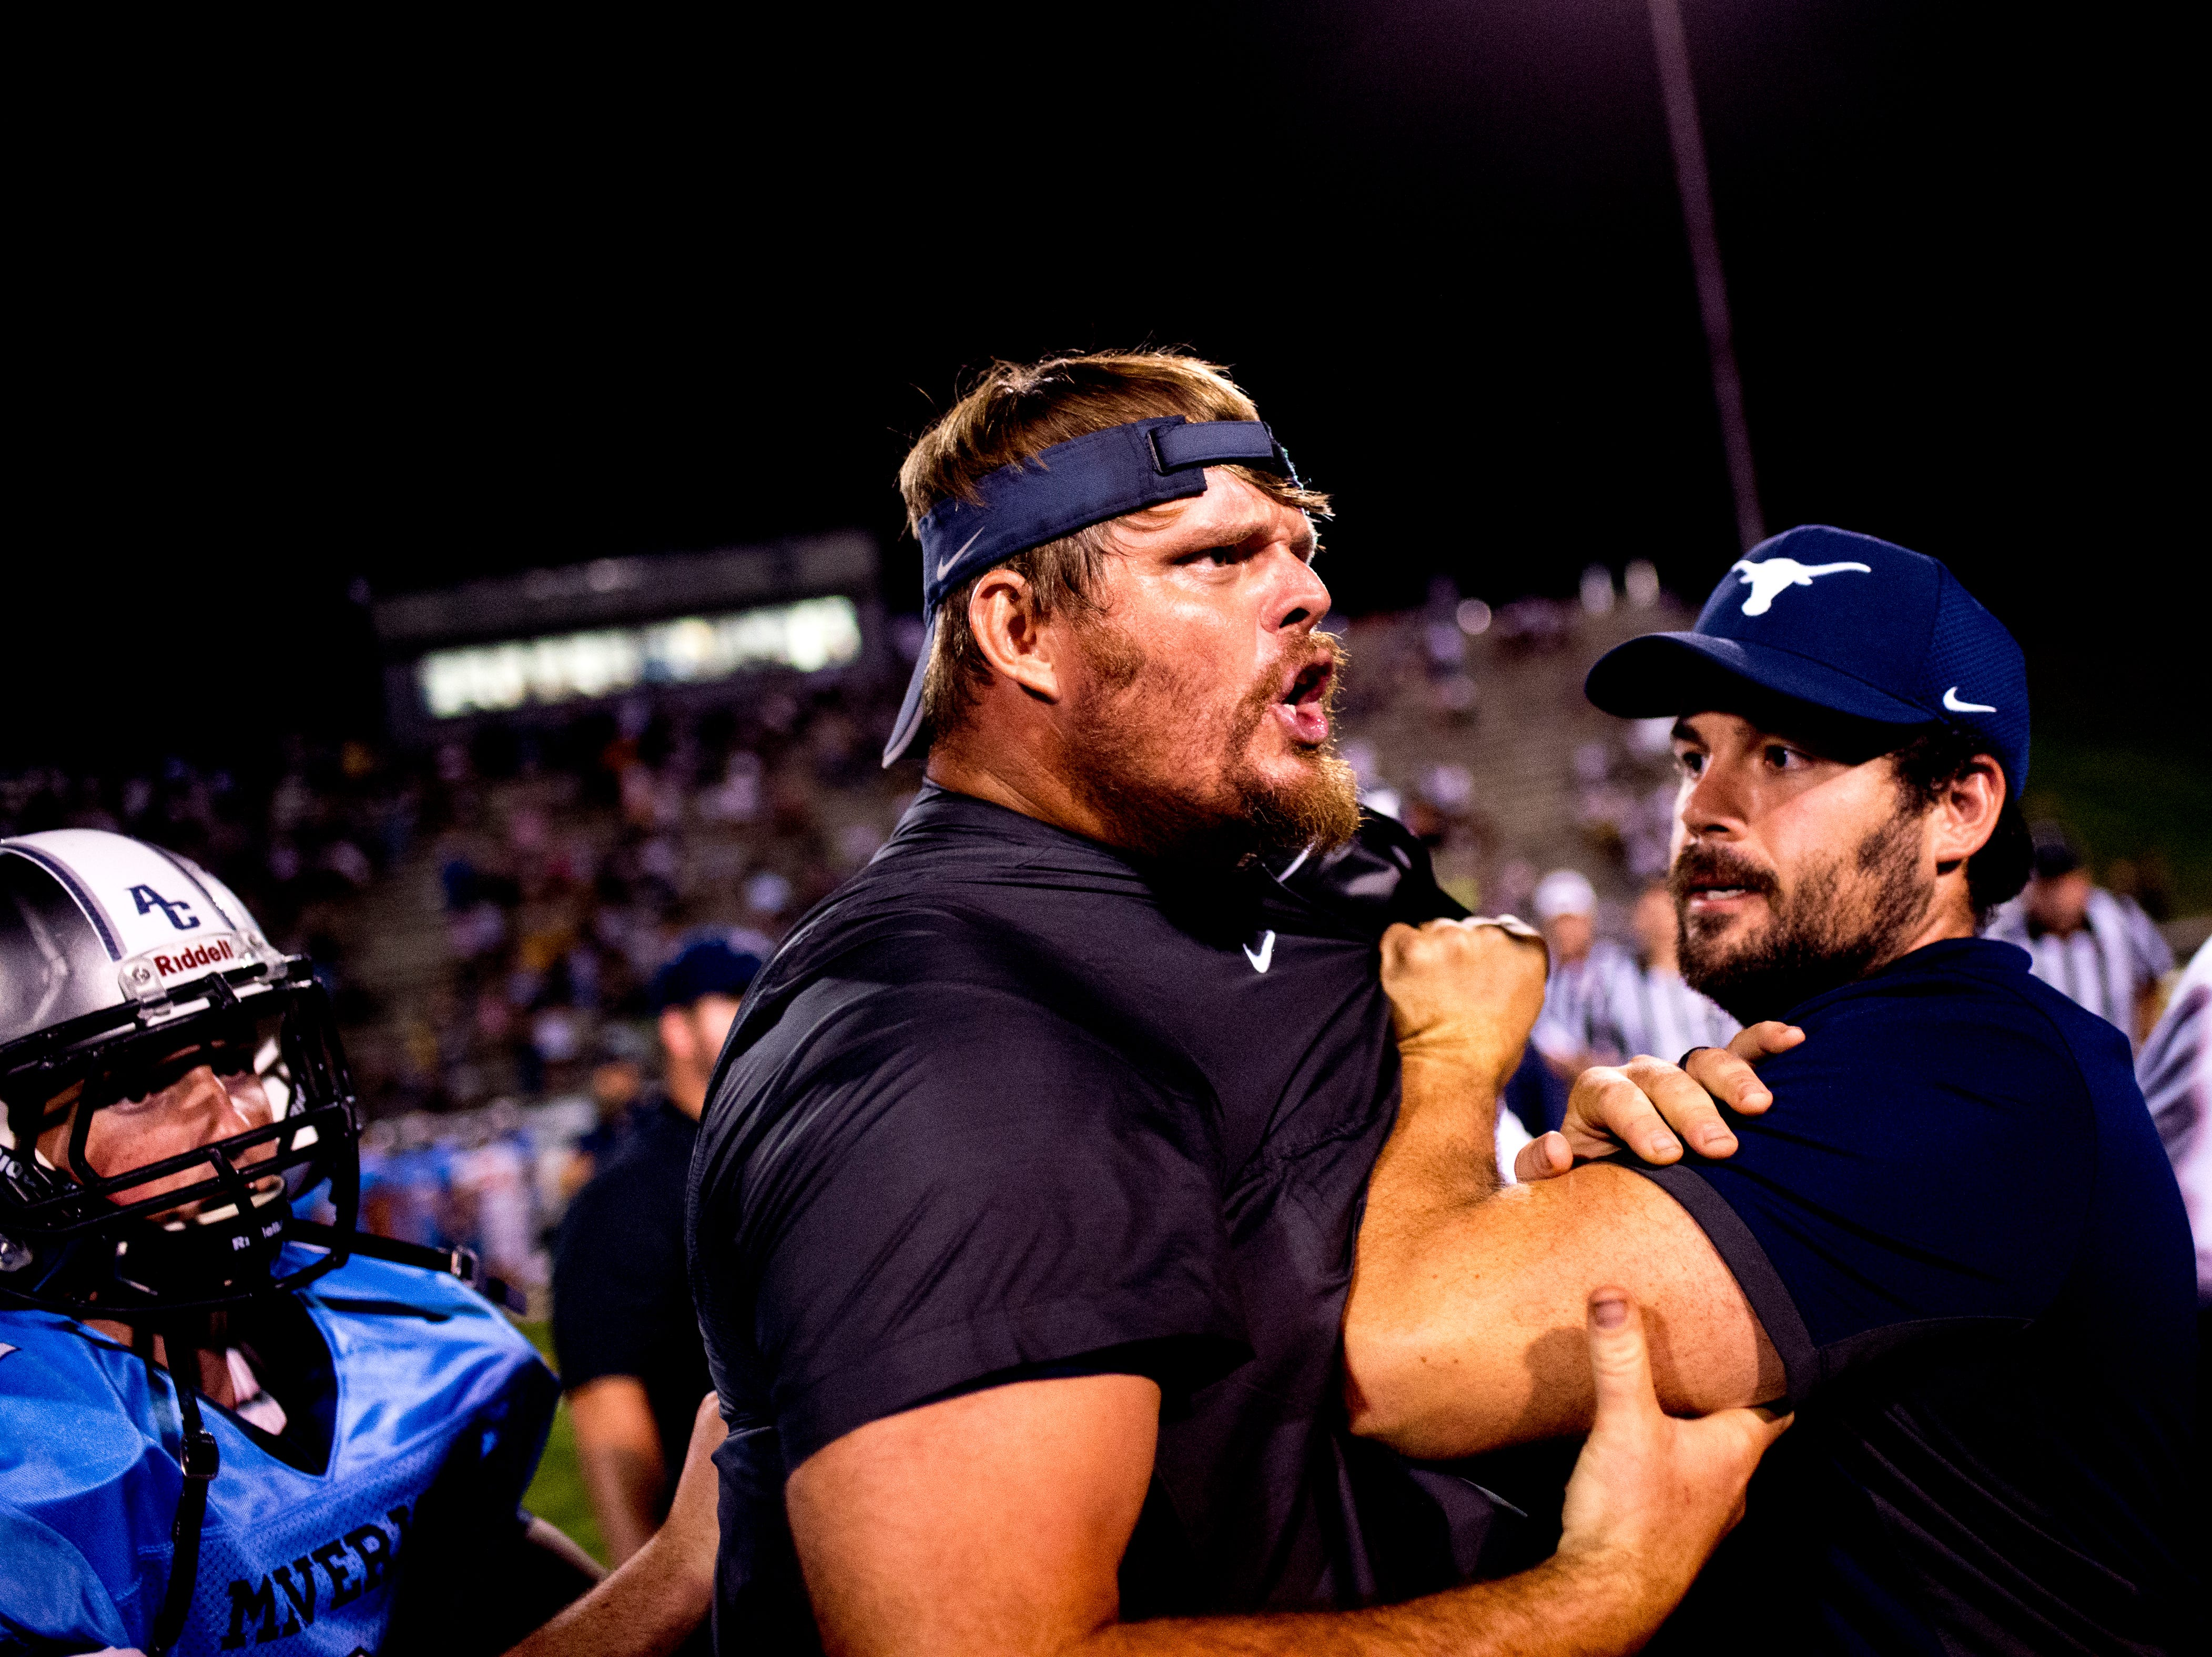 Offensive Line Coach Russ Gillum is held back by fellow team members after getting into an apparent altercation with Clinton Head Coach Randy McCamey  during a football game between Anderson County and Clinton at Anderson County High School in Clinton, Tennessee on Thursday, September 6, 2018.